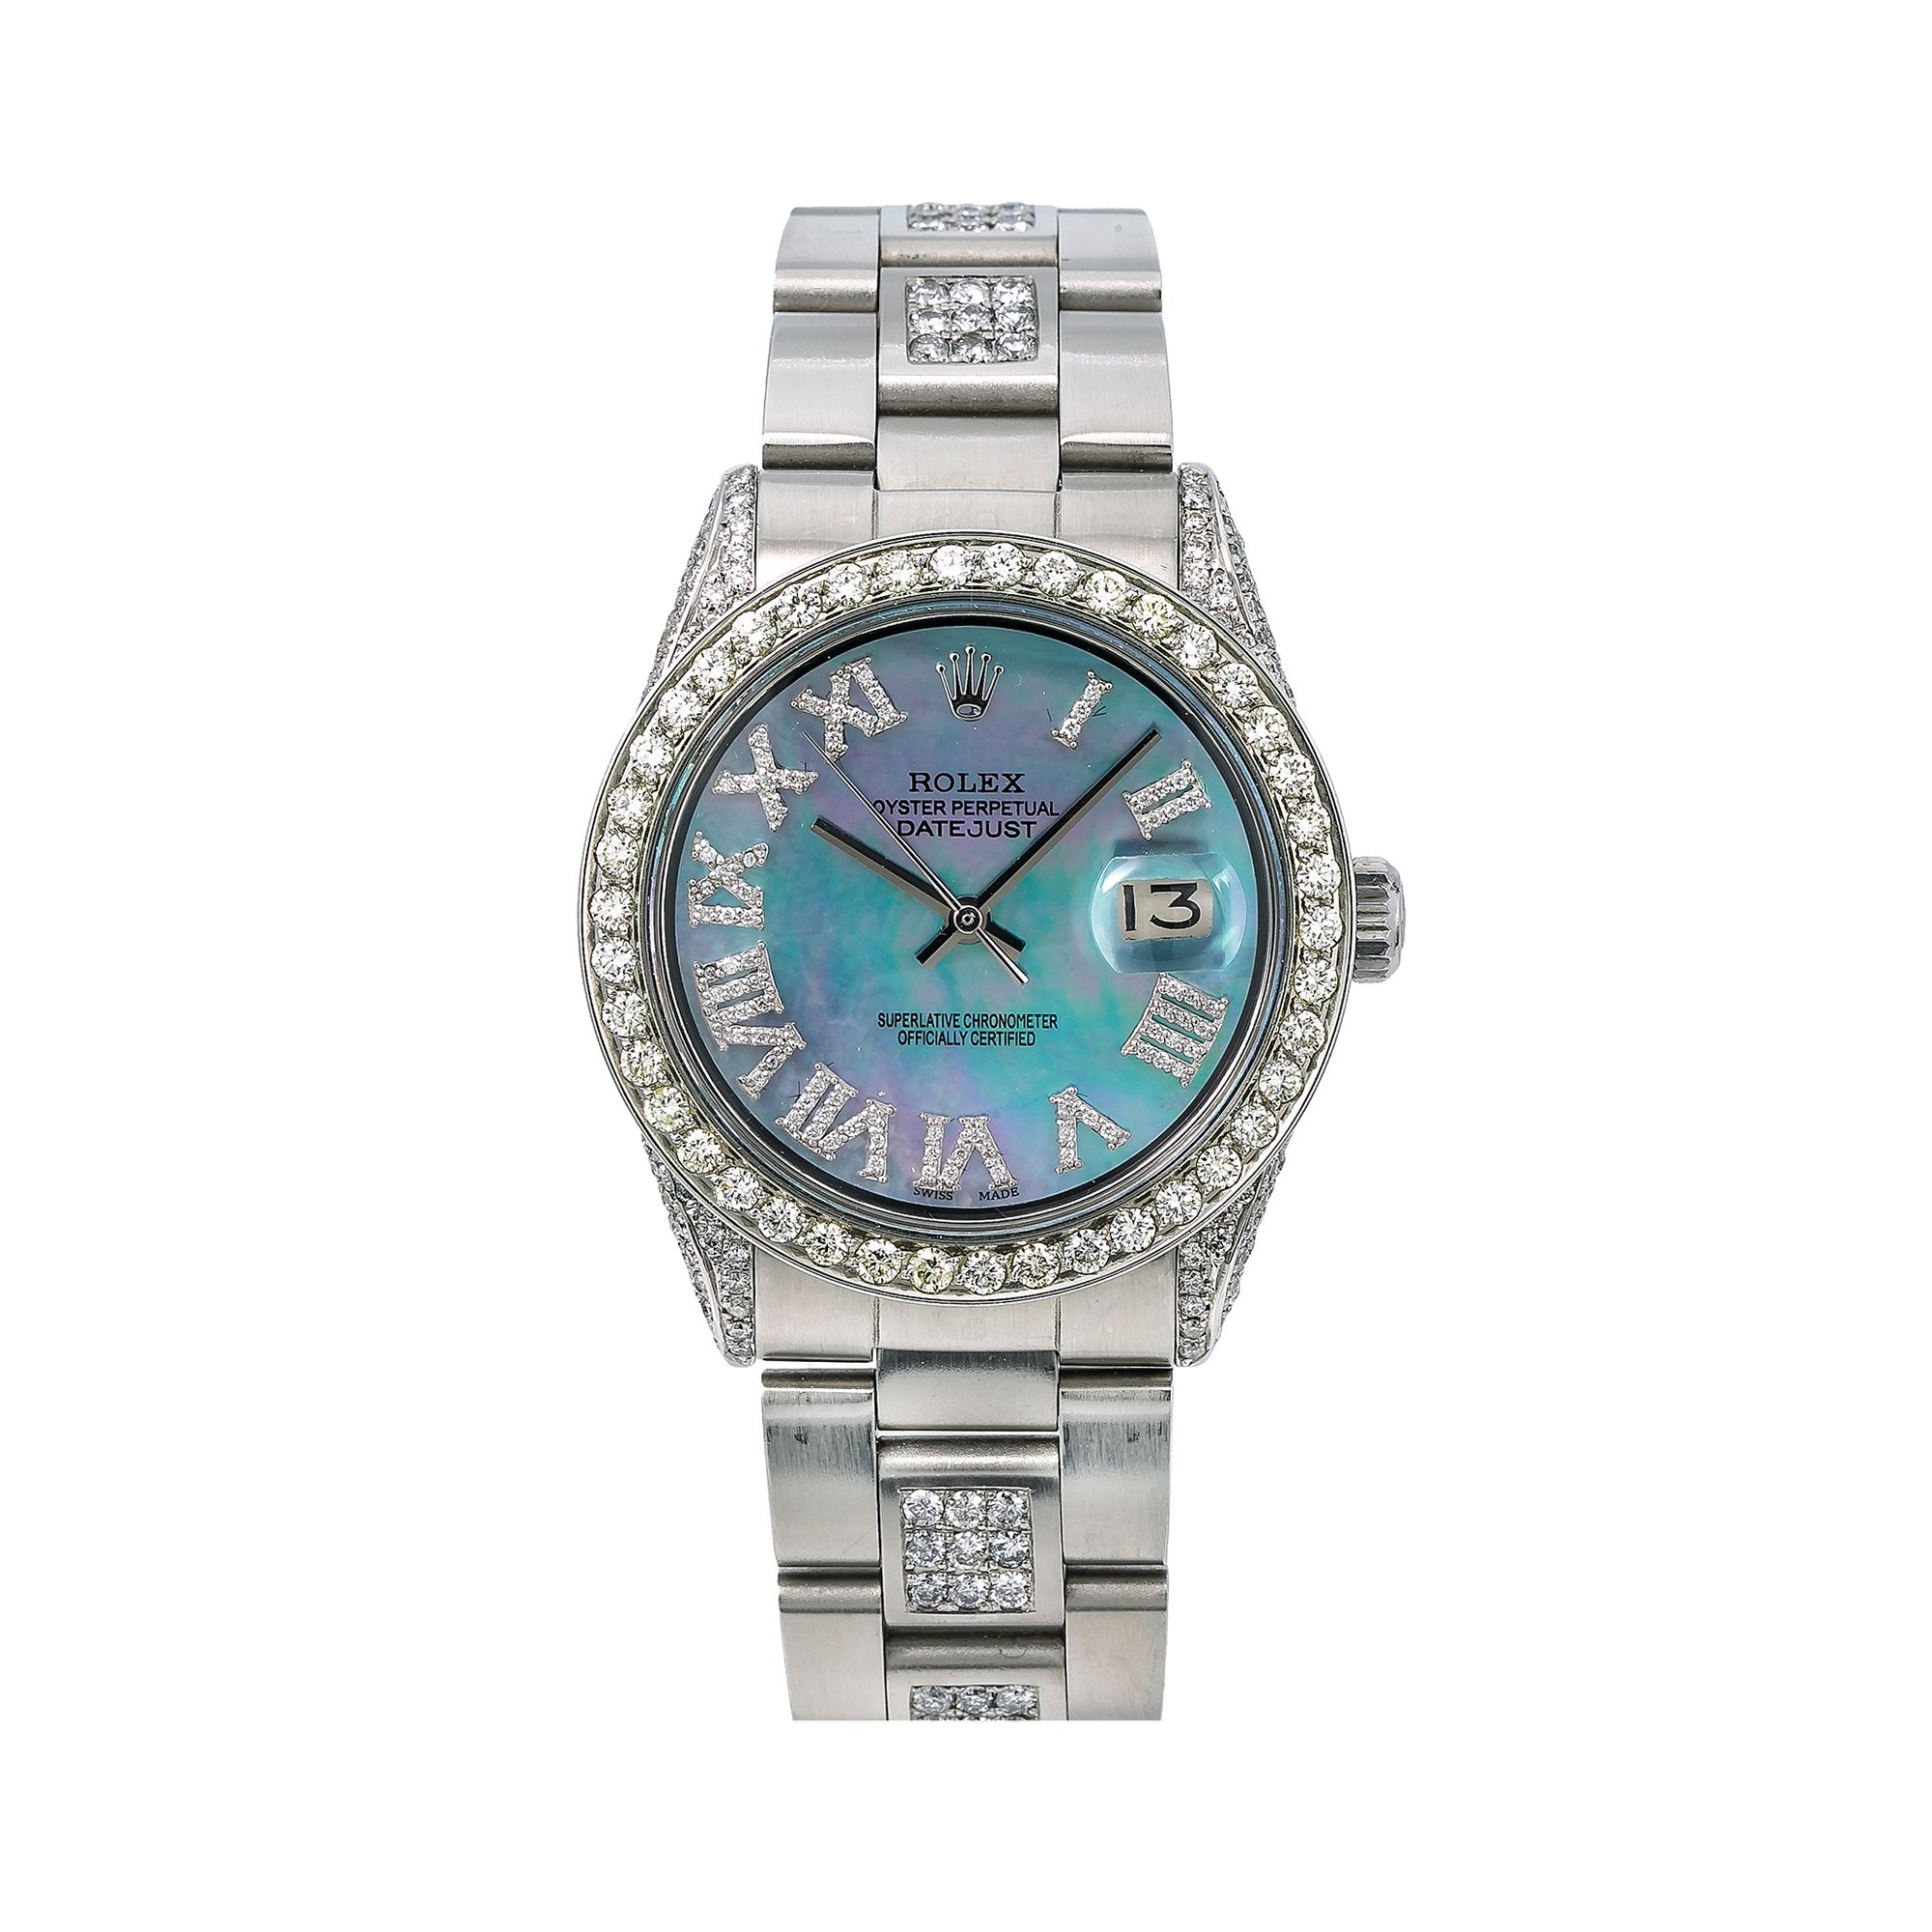 Rolex Datejust Diamond Watch, 1601 36mm, Light Blue Mother of Pearl Diamond Dial With 6.75